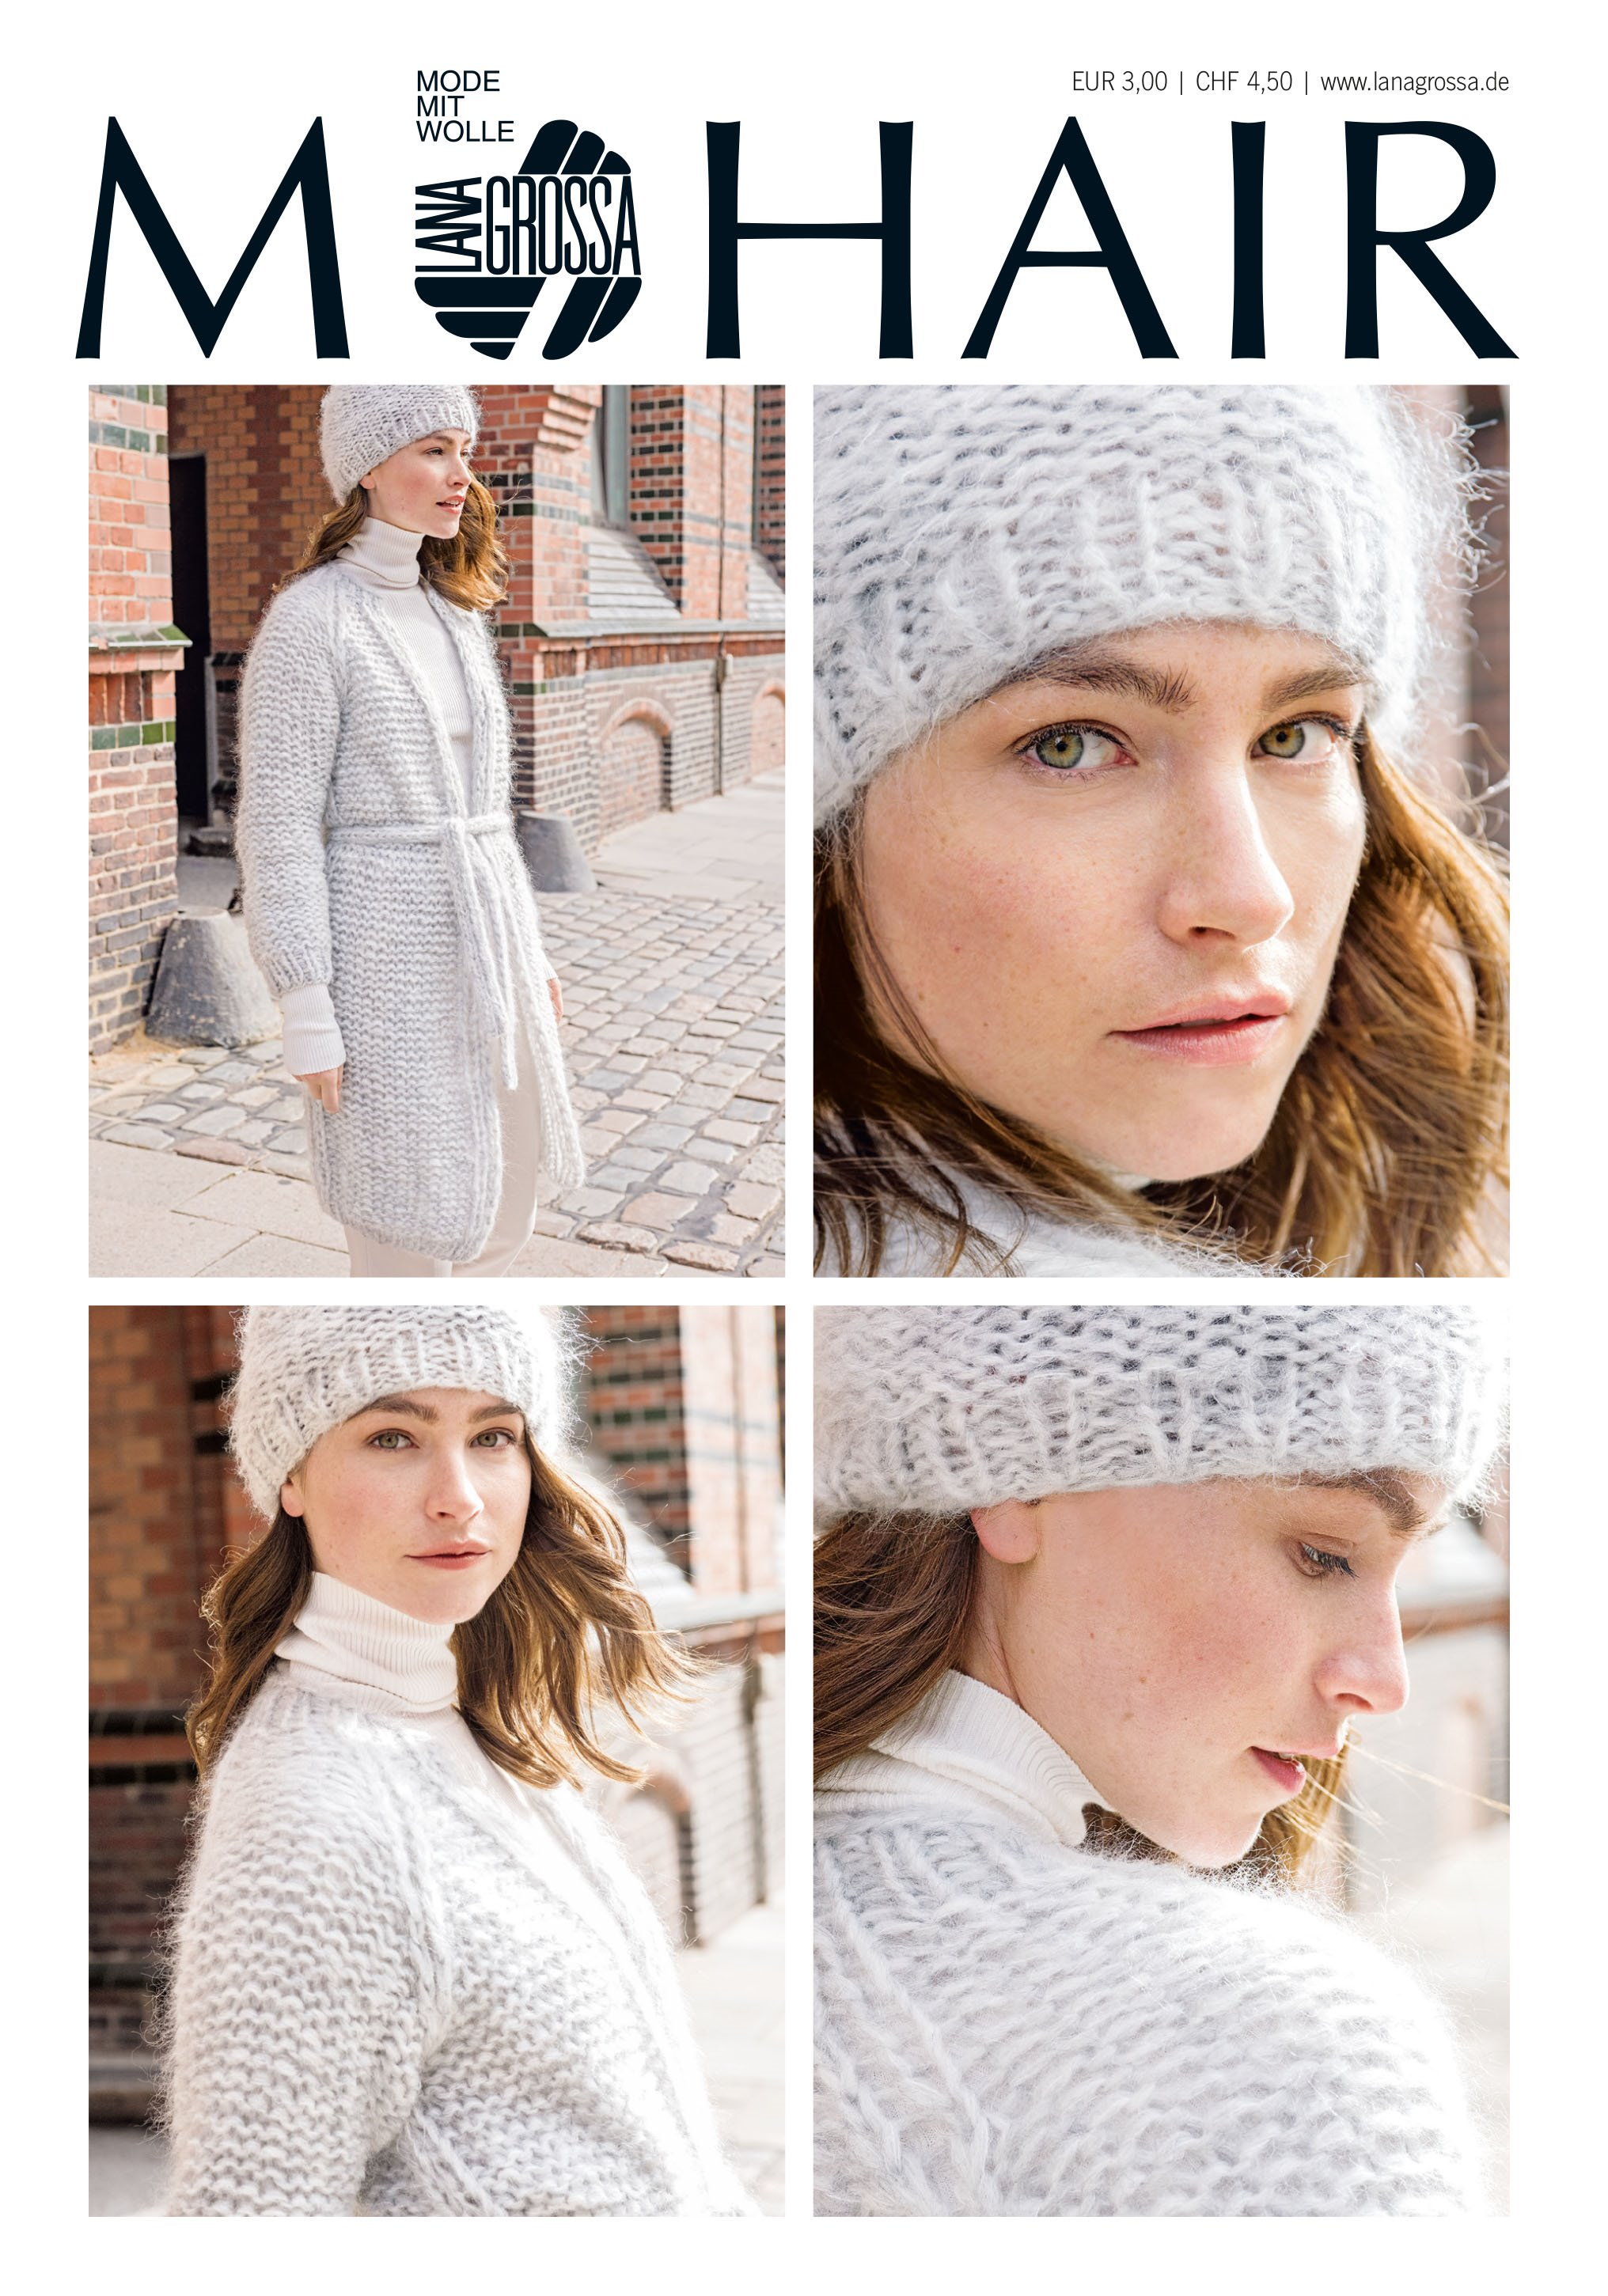 Lana Grossa MOHAIR Booklet - Magazin (DE) + Instructions (EN)